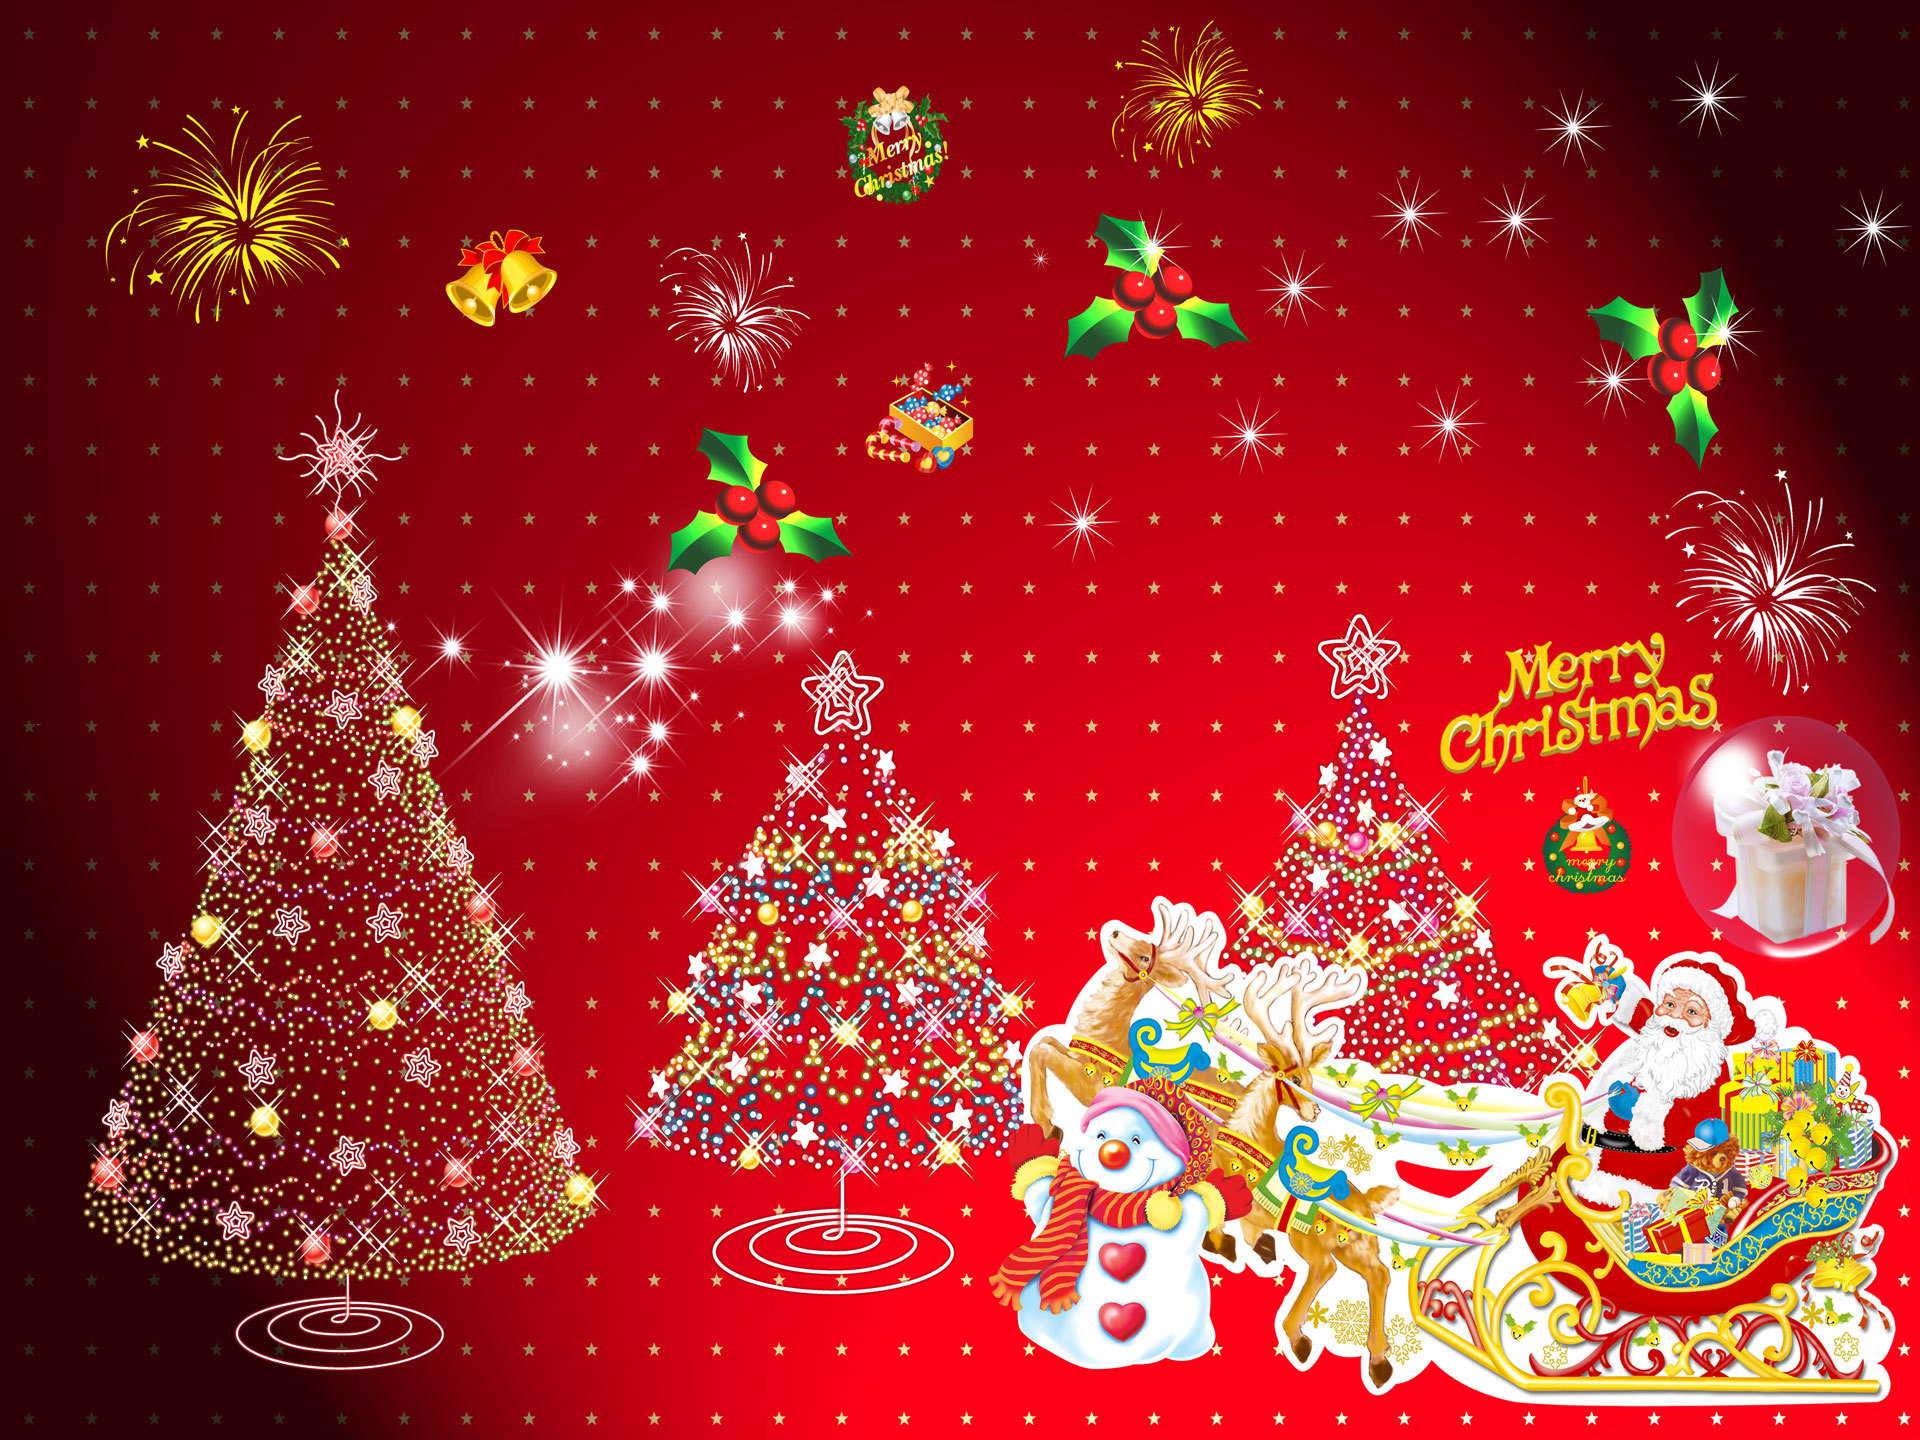 http://images4.fanpop.com/image/photos/16000000/Santa-Claus-christmas-16092485-1920-1440.jpg